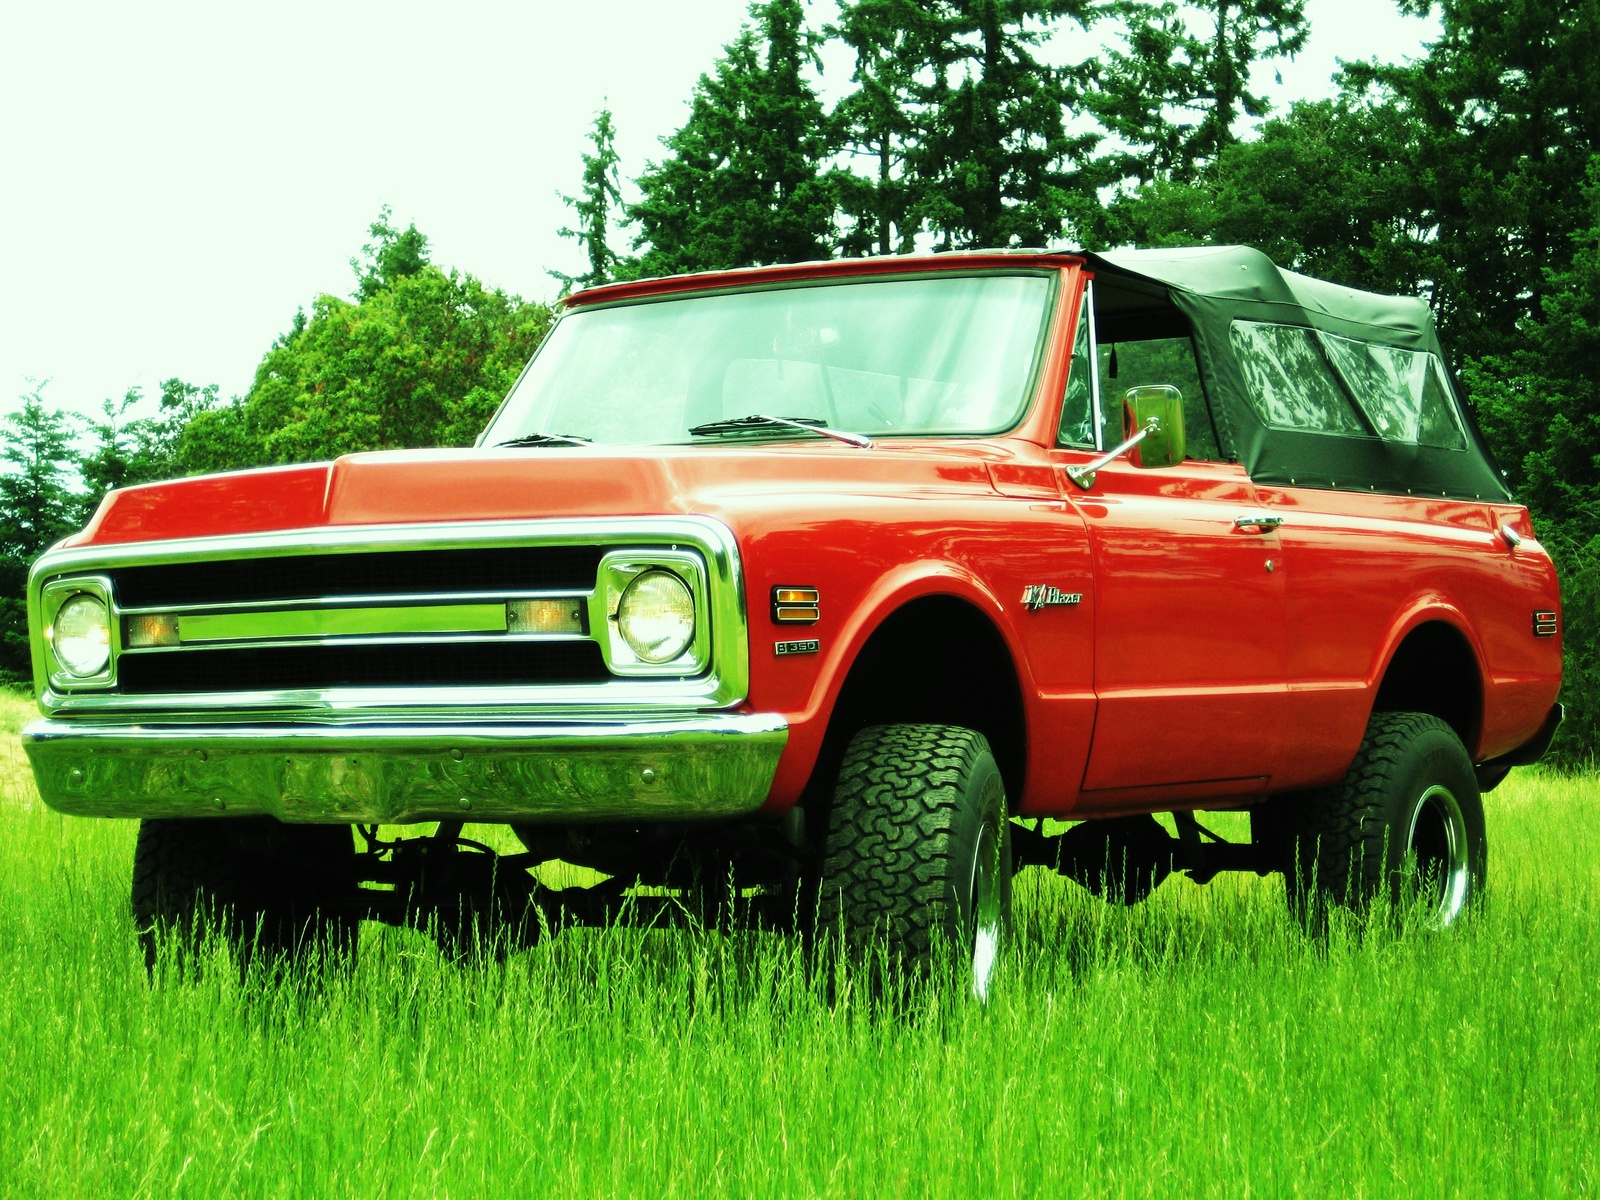 1970 Chevrolet Blazer picture